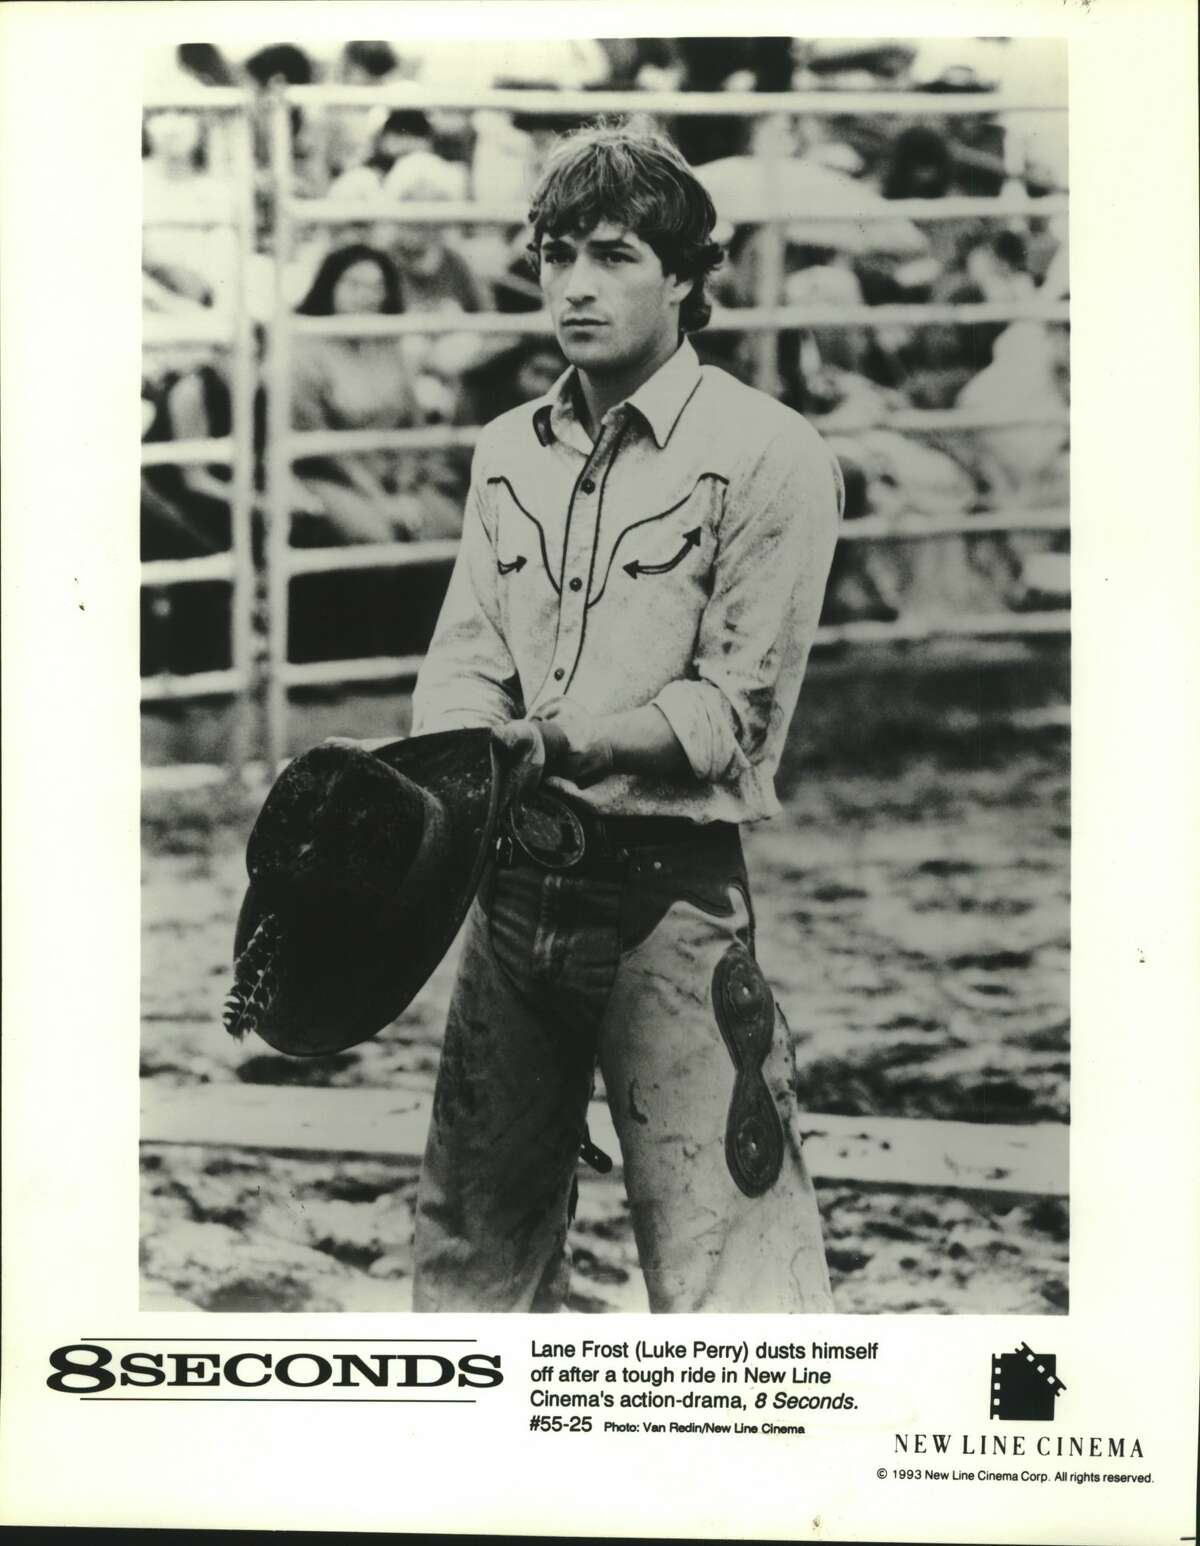 Lane Frost, Luke Perry, dusts himself off after a tough ride in New Line Cinema's action-drama, 8 Seconds.